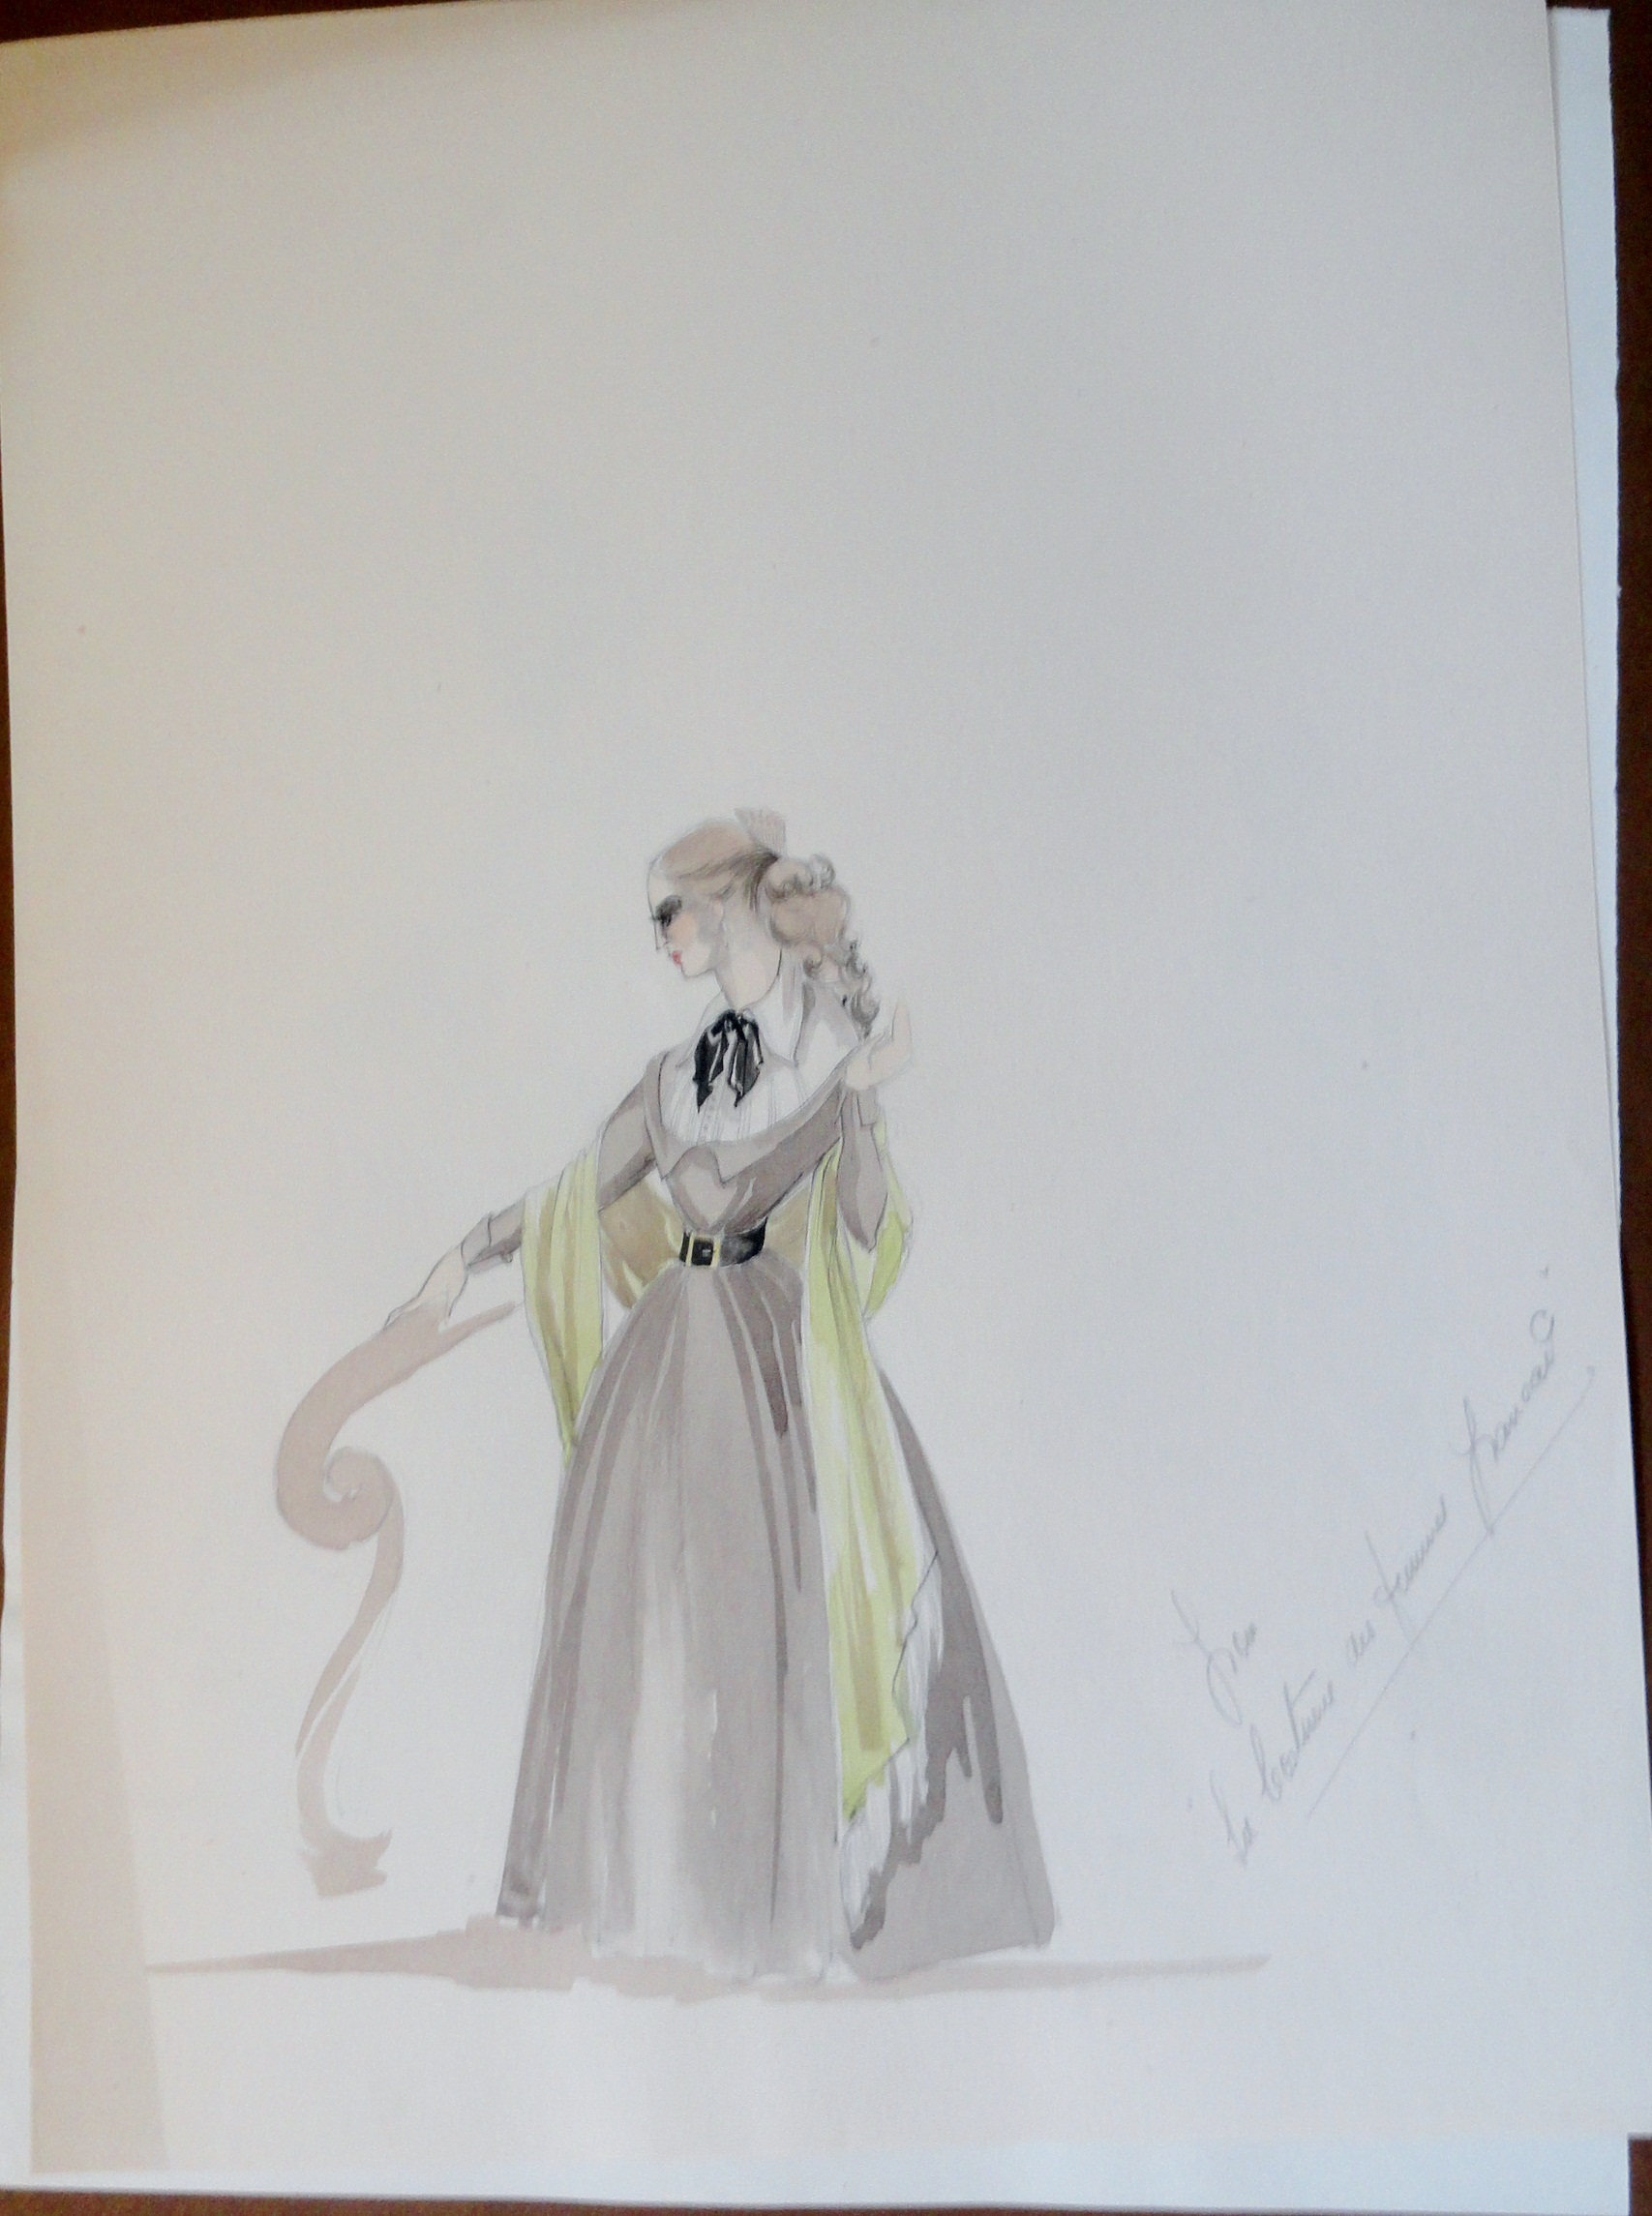 Rachels sister in  brown dress black tie unsigned study with notes. Pen and Ink and Watercolor. From the Rachel Portfolio by Owen Hyde Clark. $100.00.